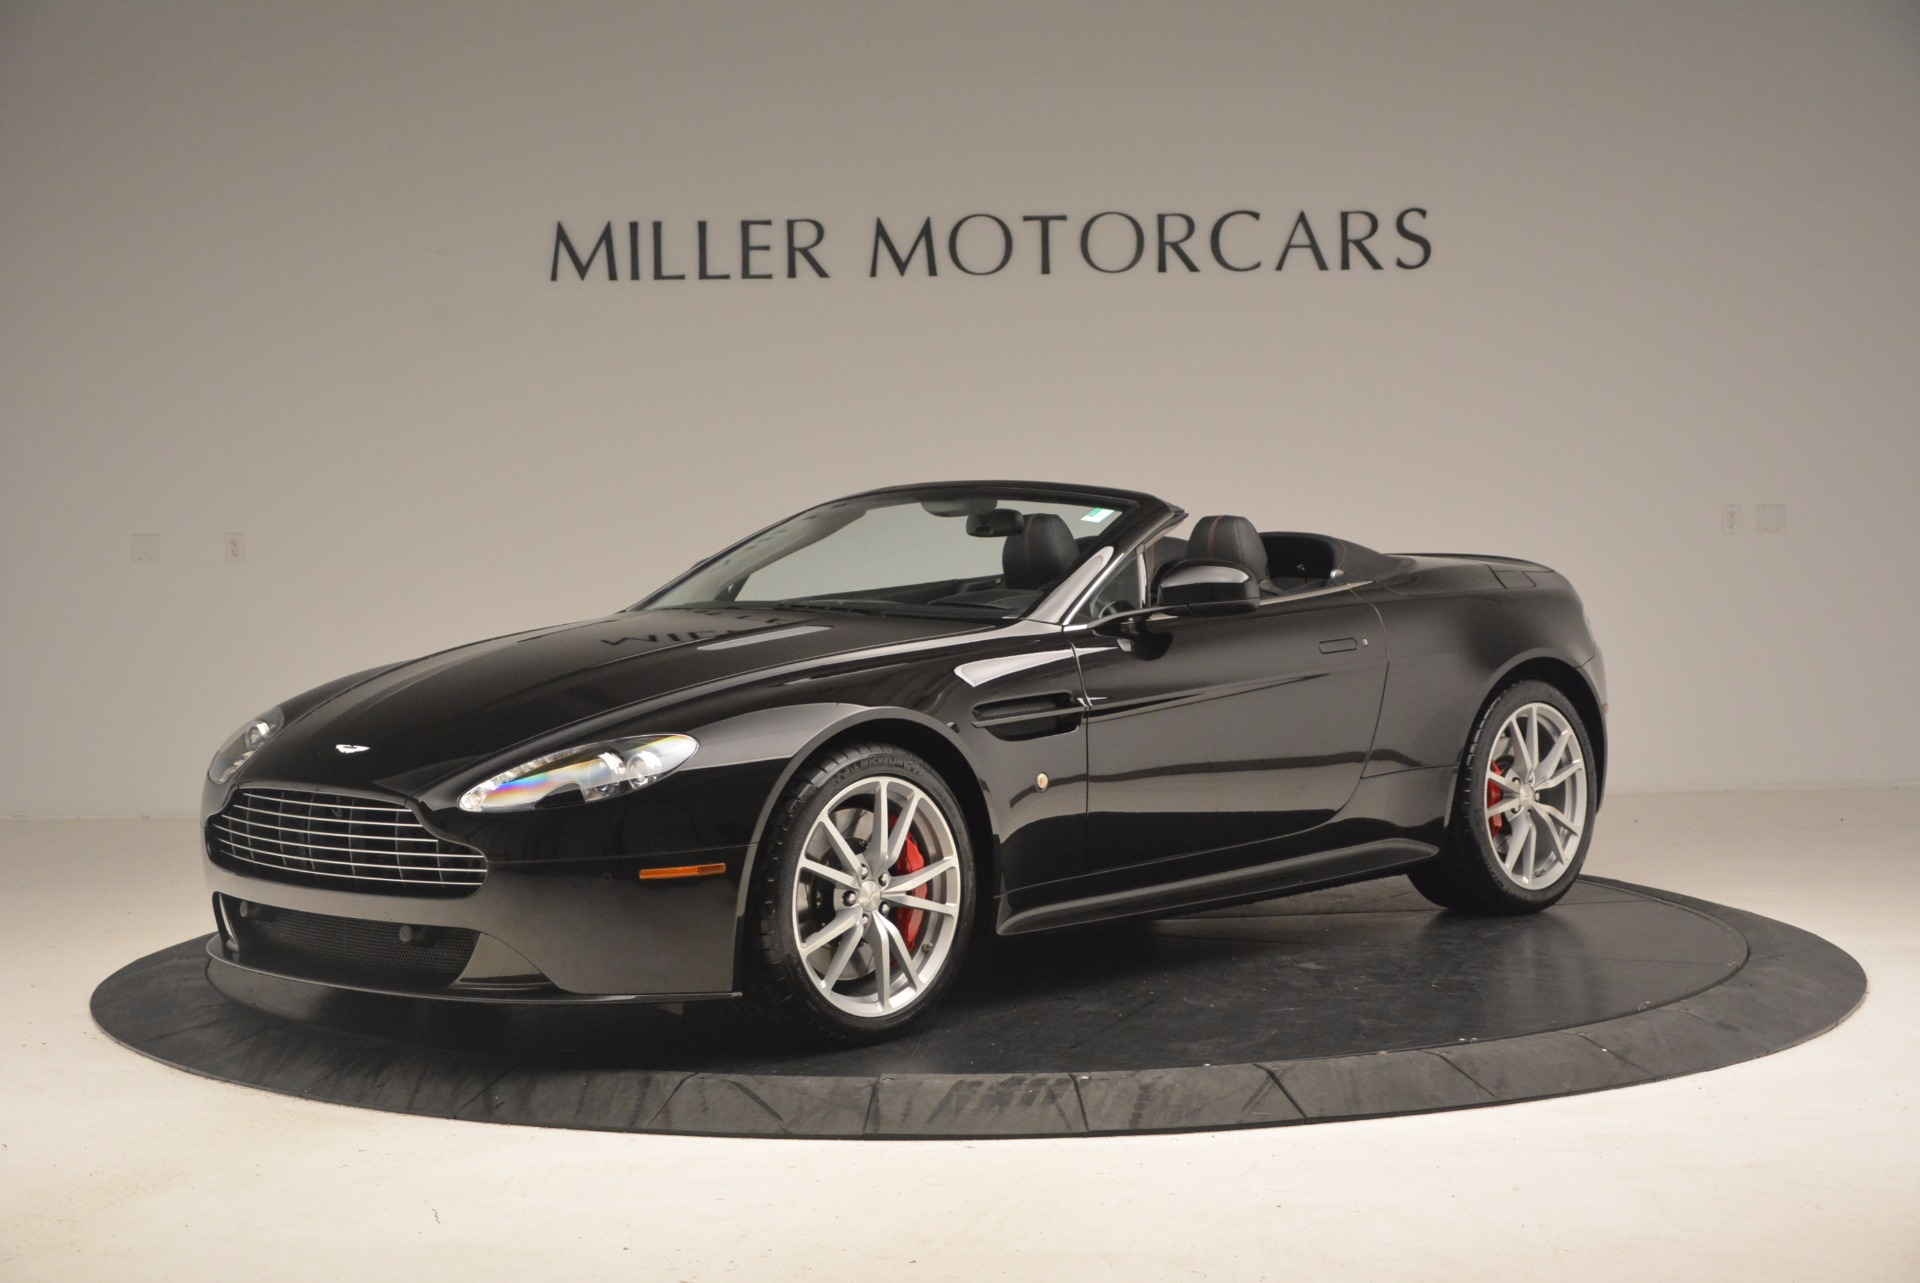 Used 2012 Aston Martin V8 Vantage S Roadster For Sale In Westport, CT 1181_p2